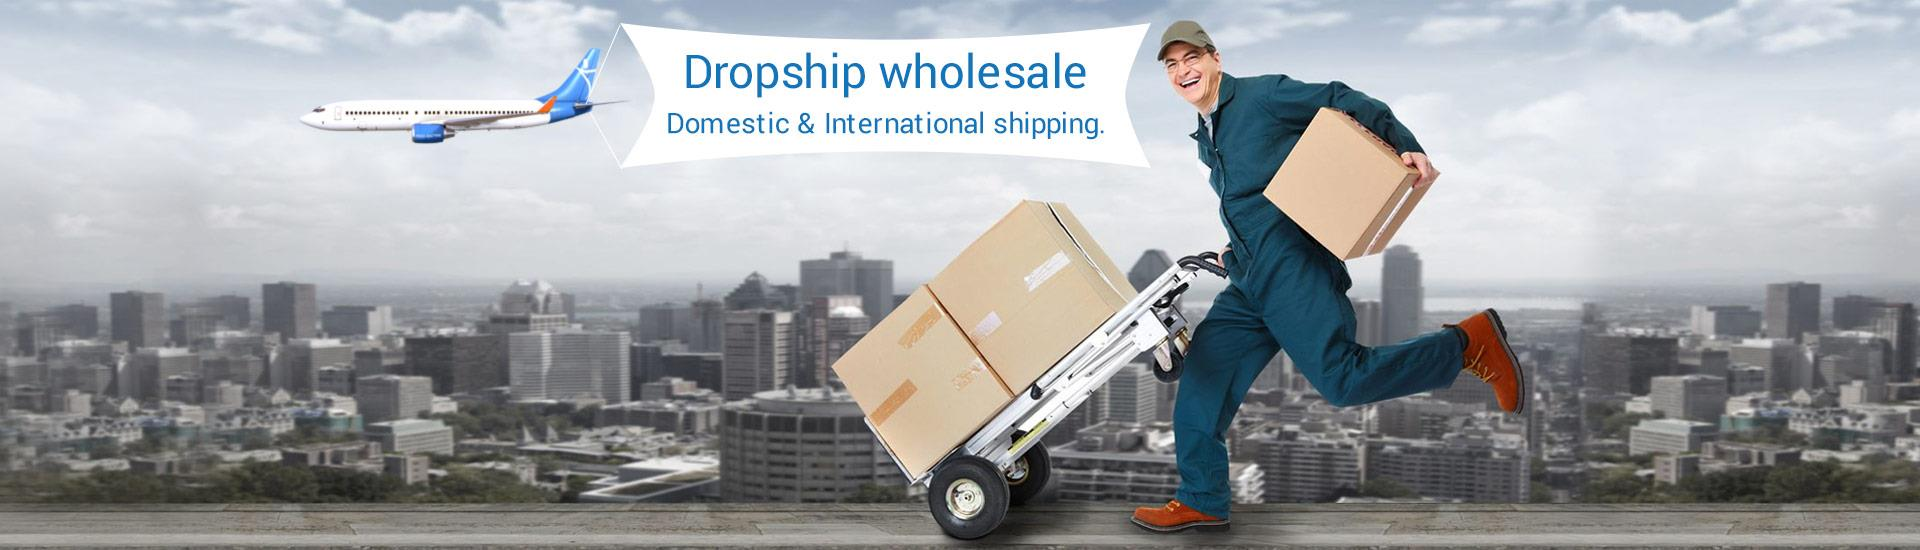 Dropship Wholesale